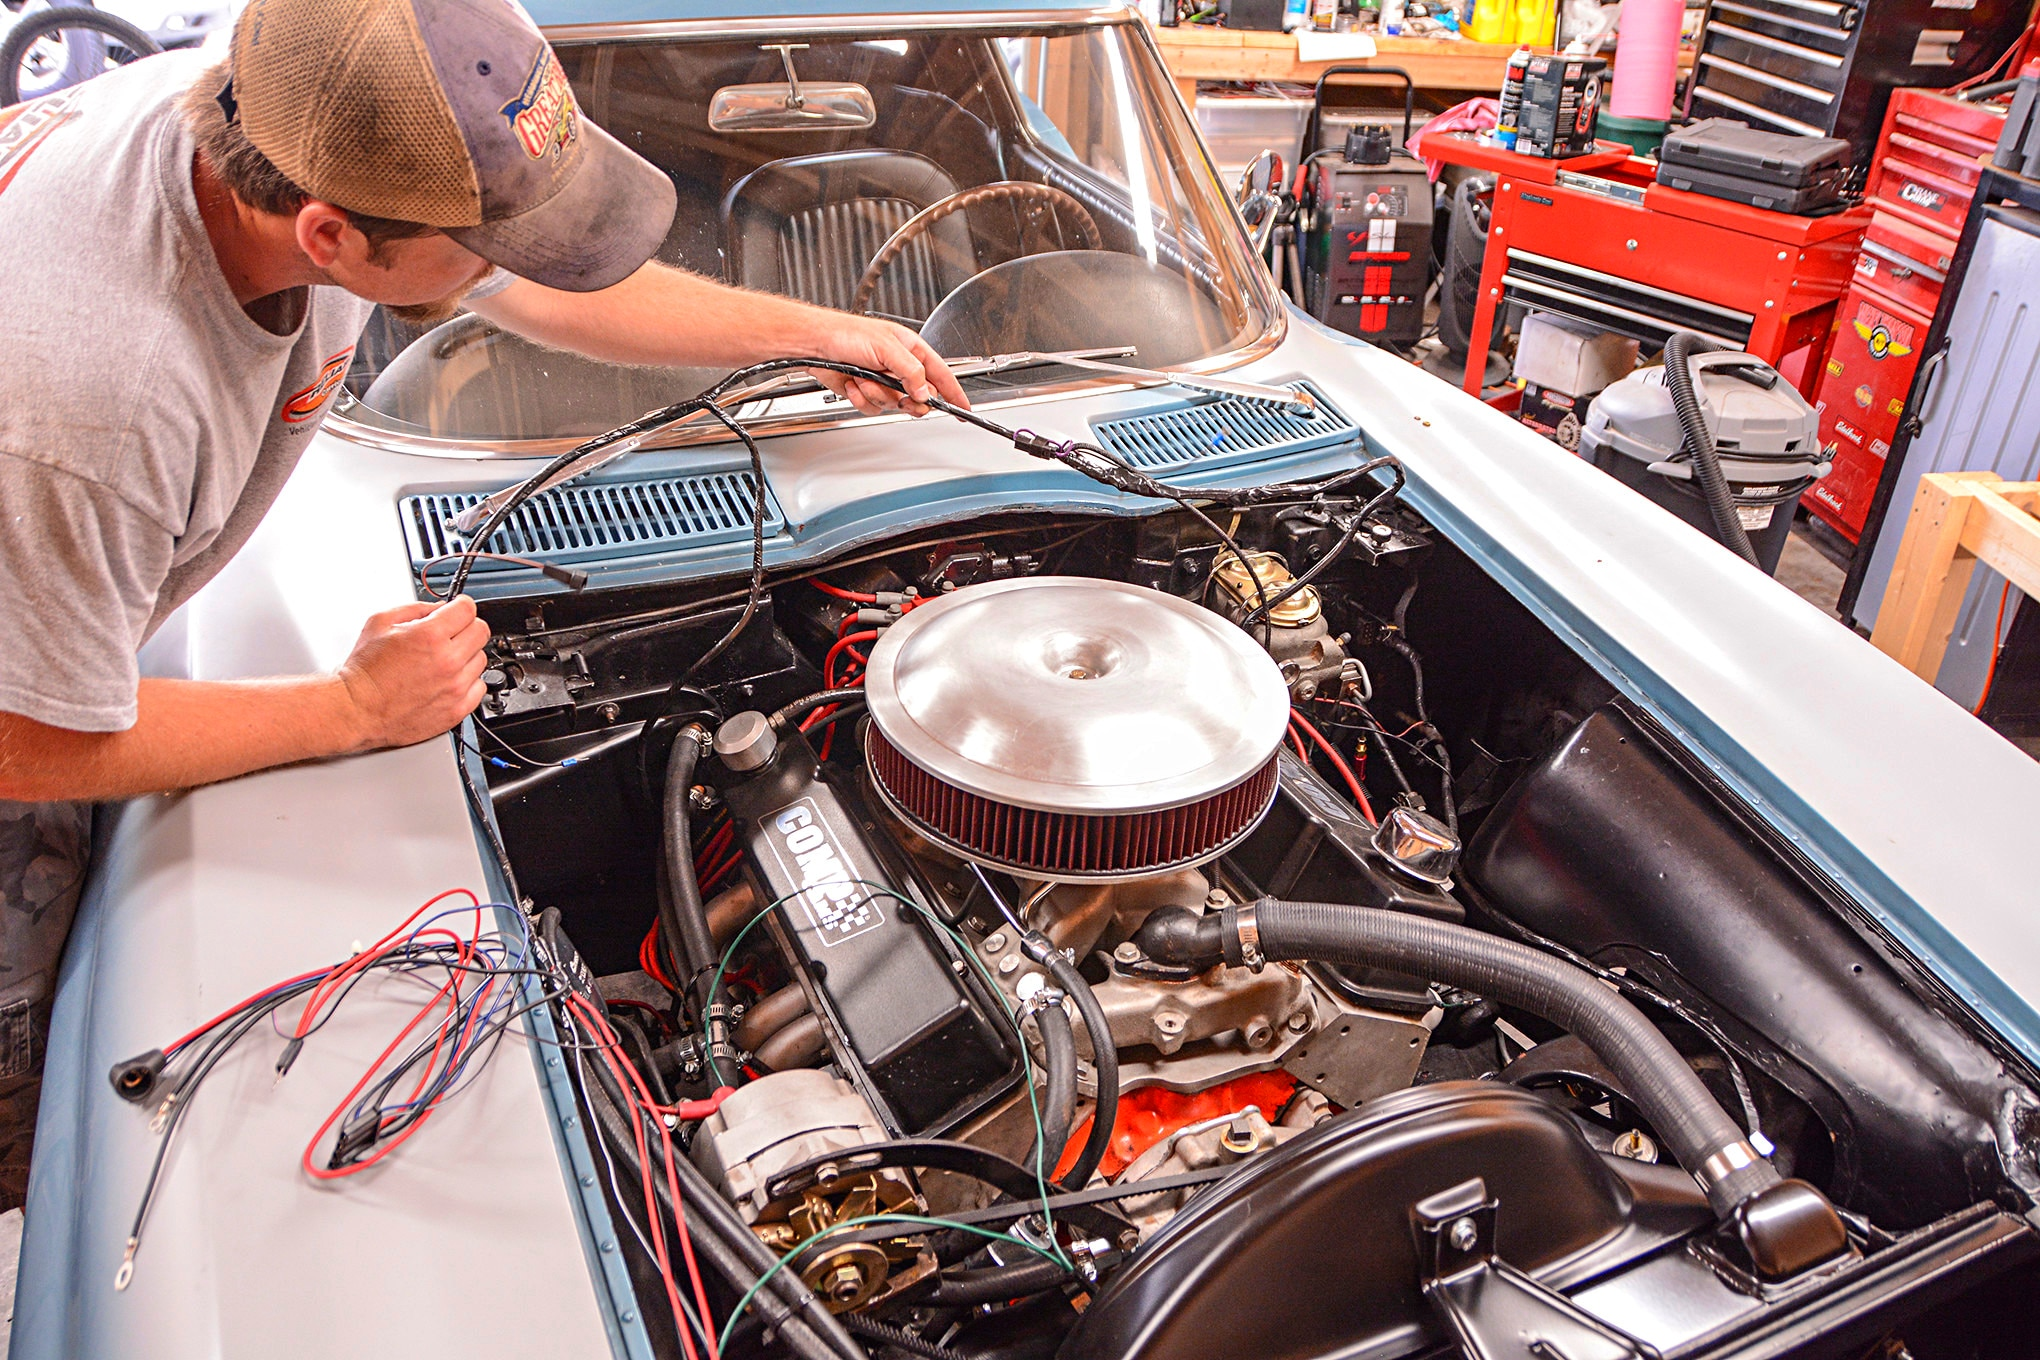 corvette wiring gremlins solved and charging system upgrade 1964 corvette wiring harness [ 2040 x 1360 Pixel ]